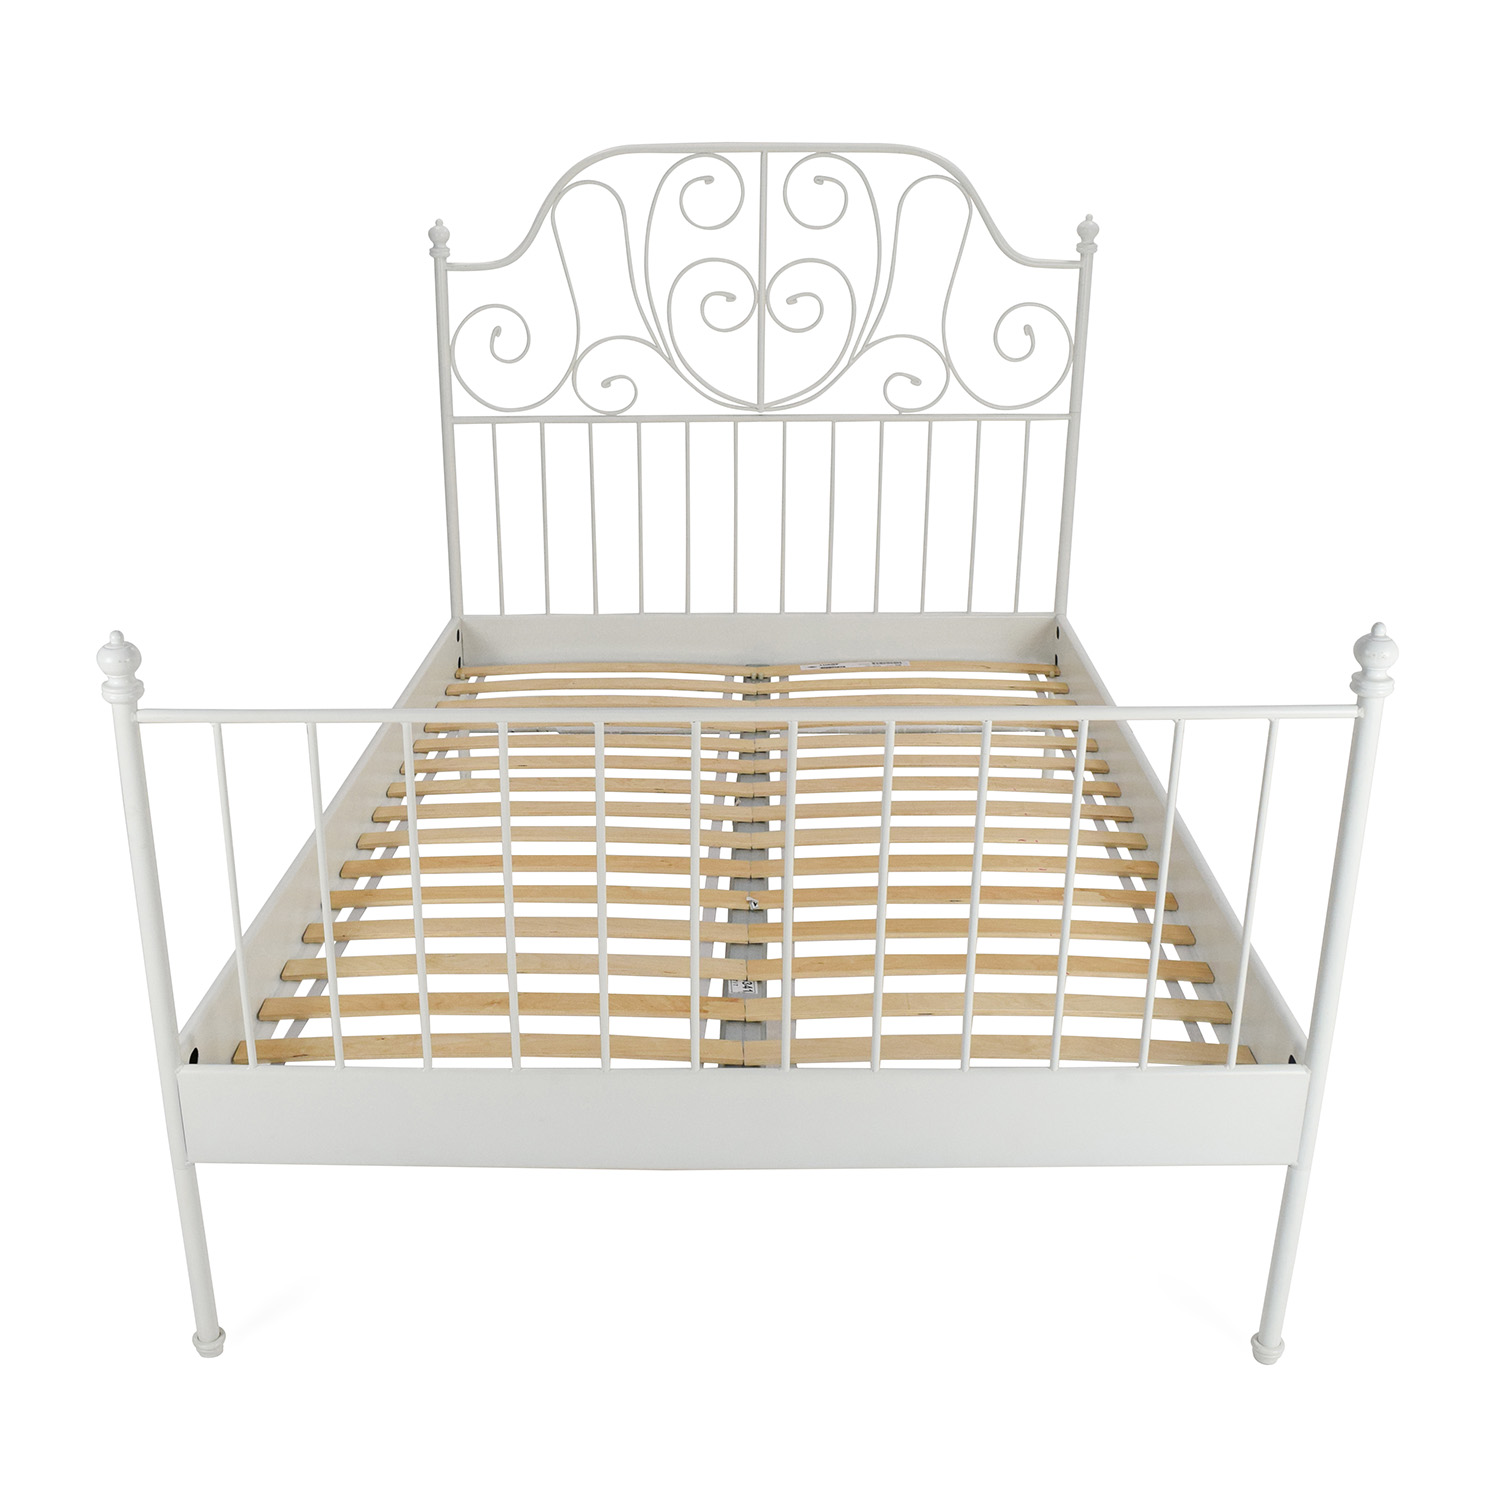 Leirvik Queen Bed Frame Page 6 Frame Design & Reviews ✓